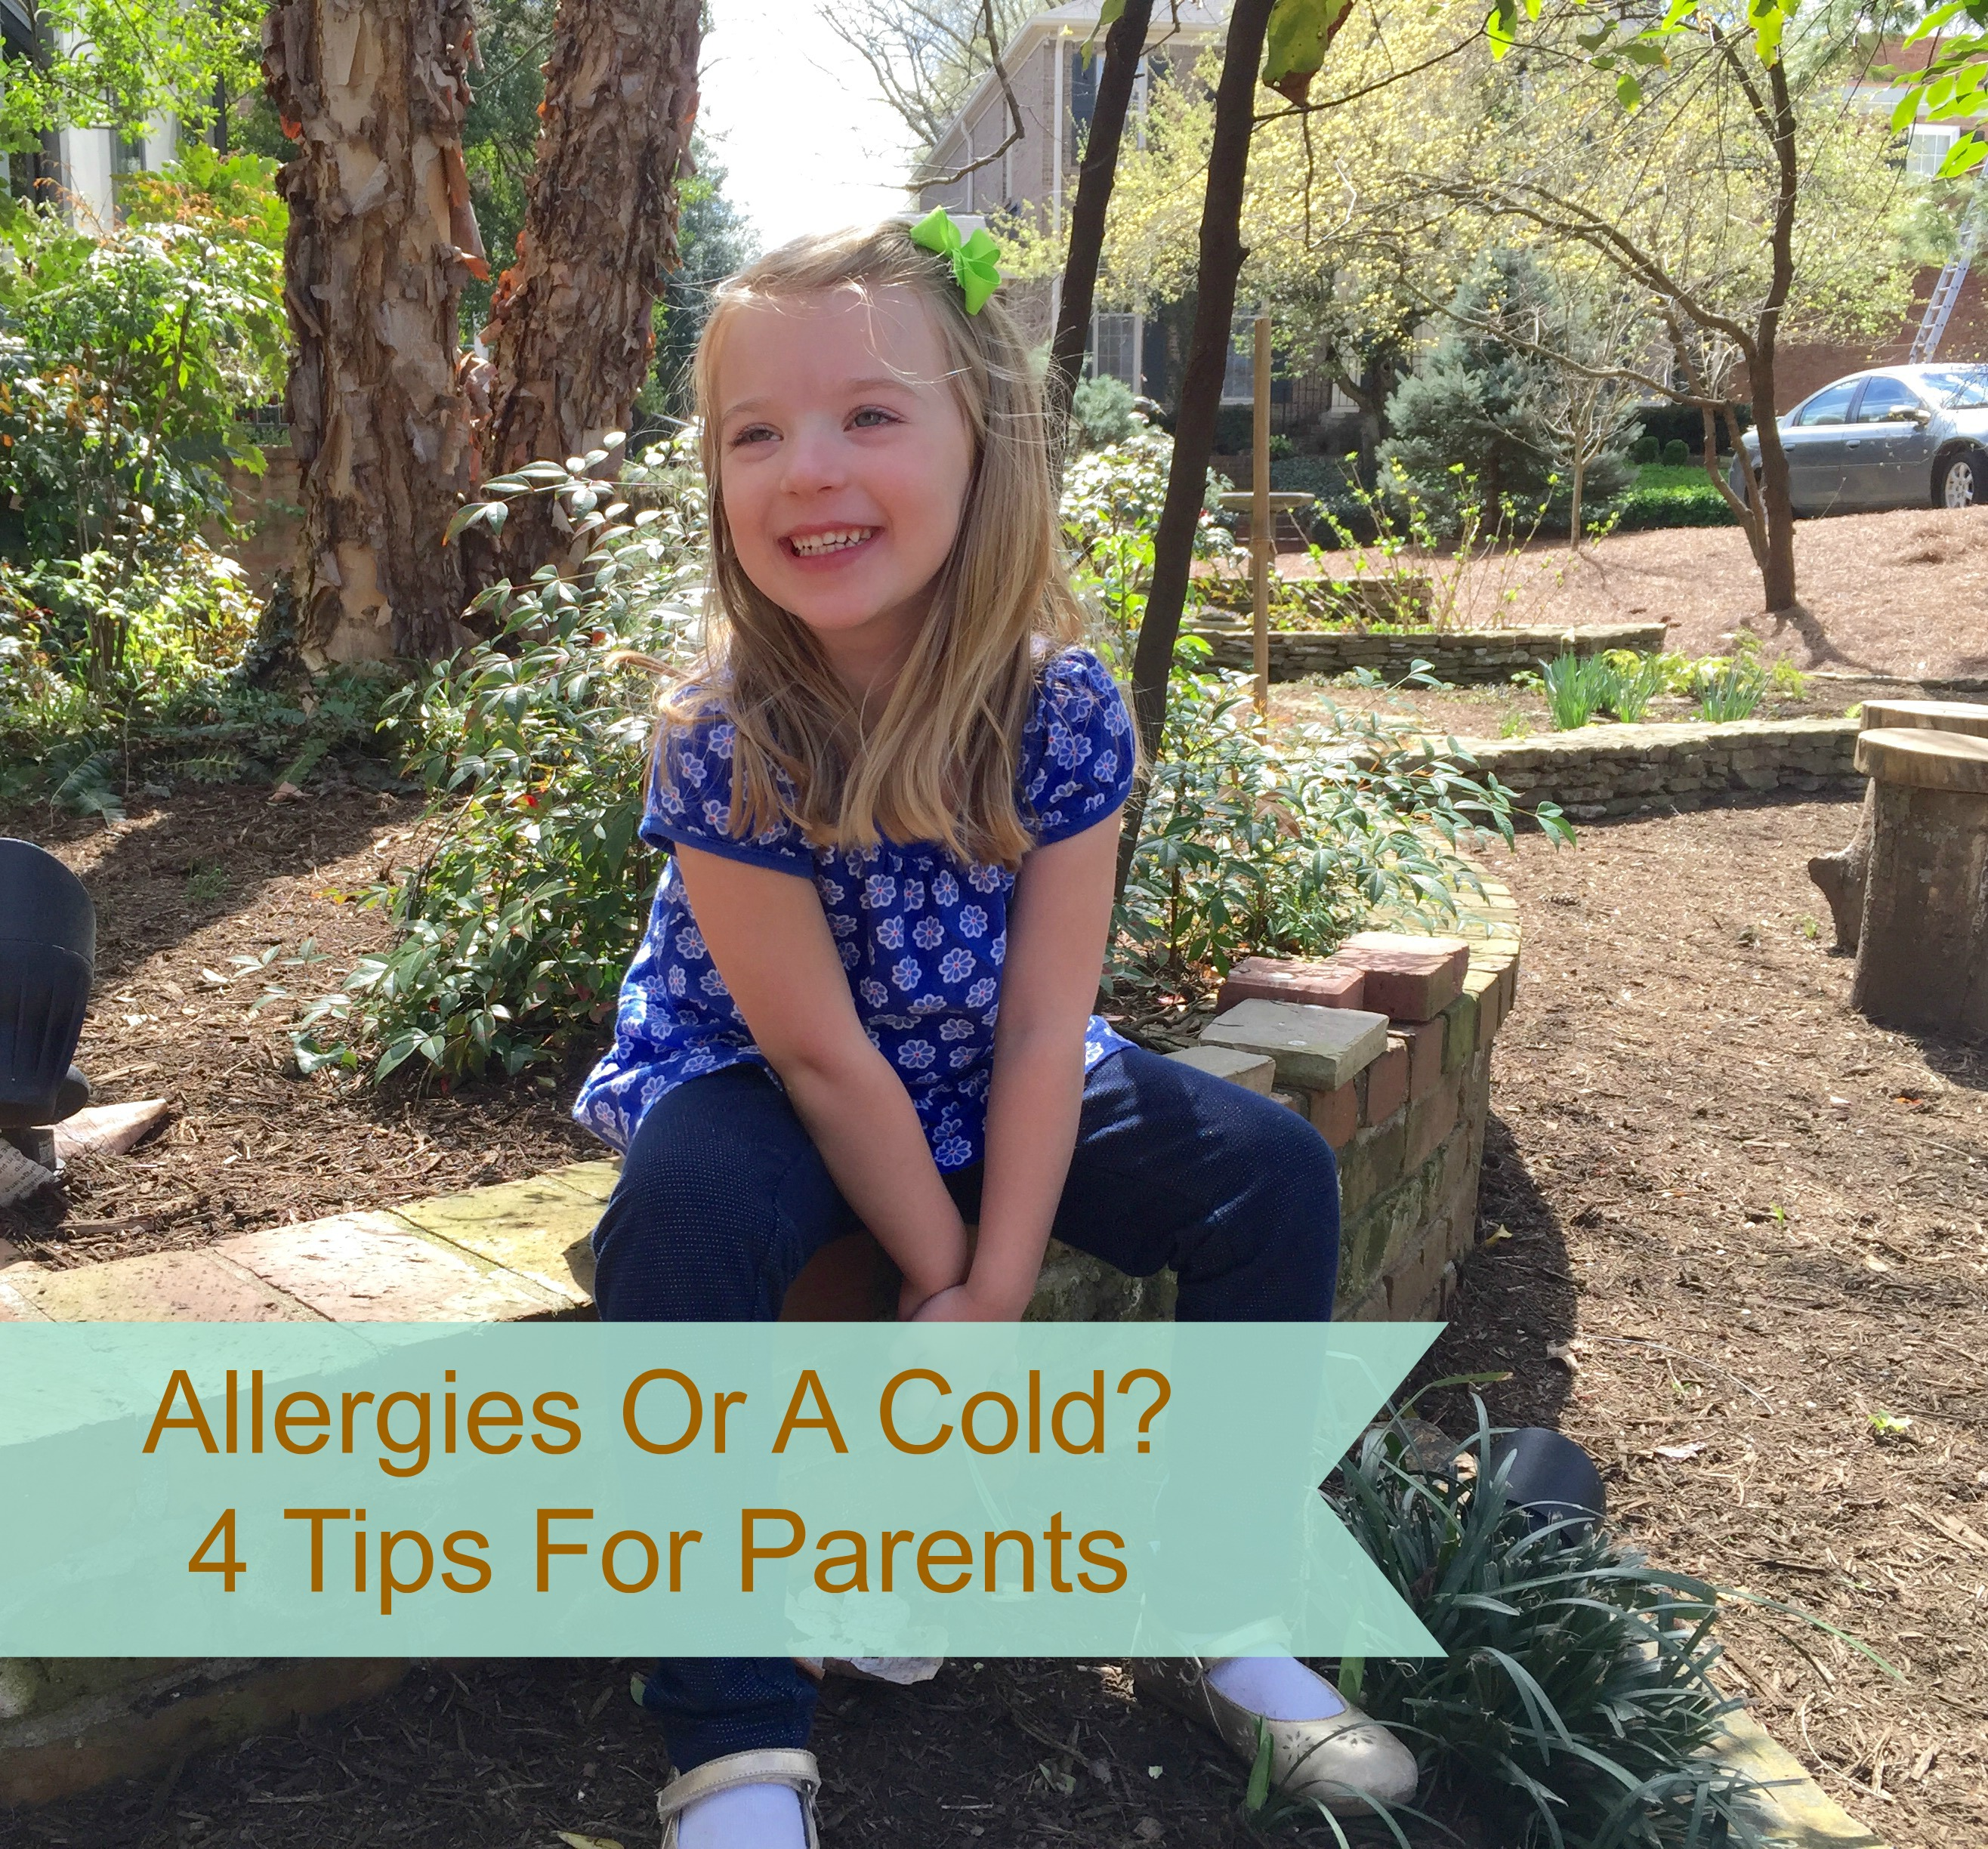 Tips for Parents - Allergies and Colds